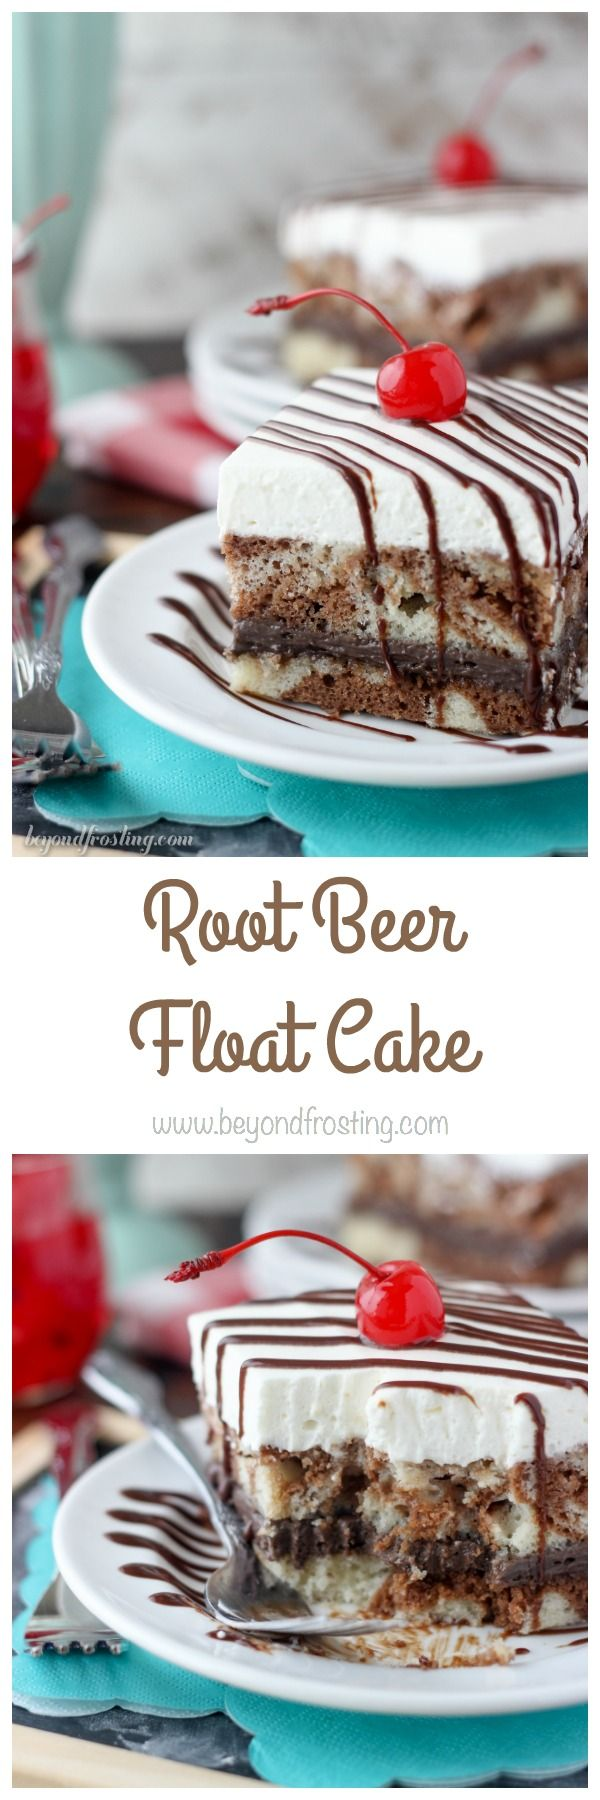 Everyone loved this Root Beer Float Cake!! The cake is a vanilla and chocolate root beer marbled cake with a layer of chocolate cream and a root beer whipped cream.